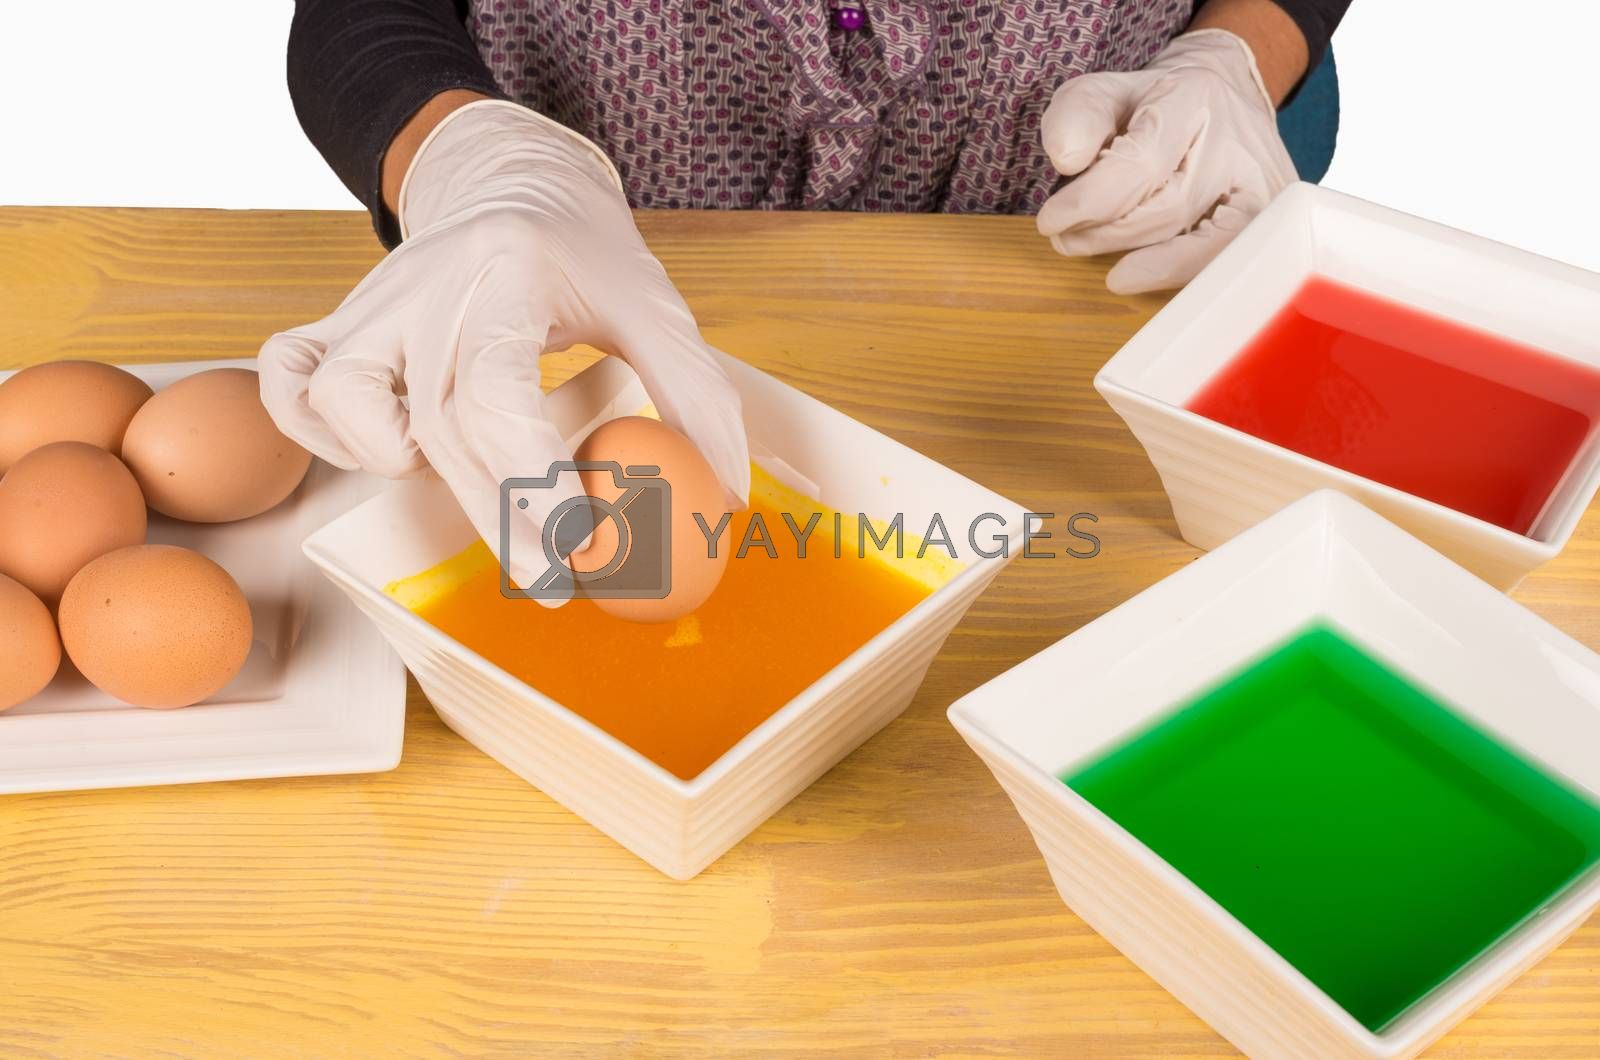 Hands with gloves getting ready to dye Easter eggs